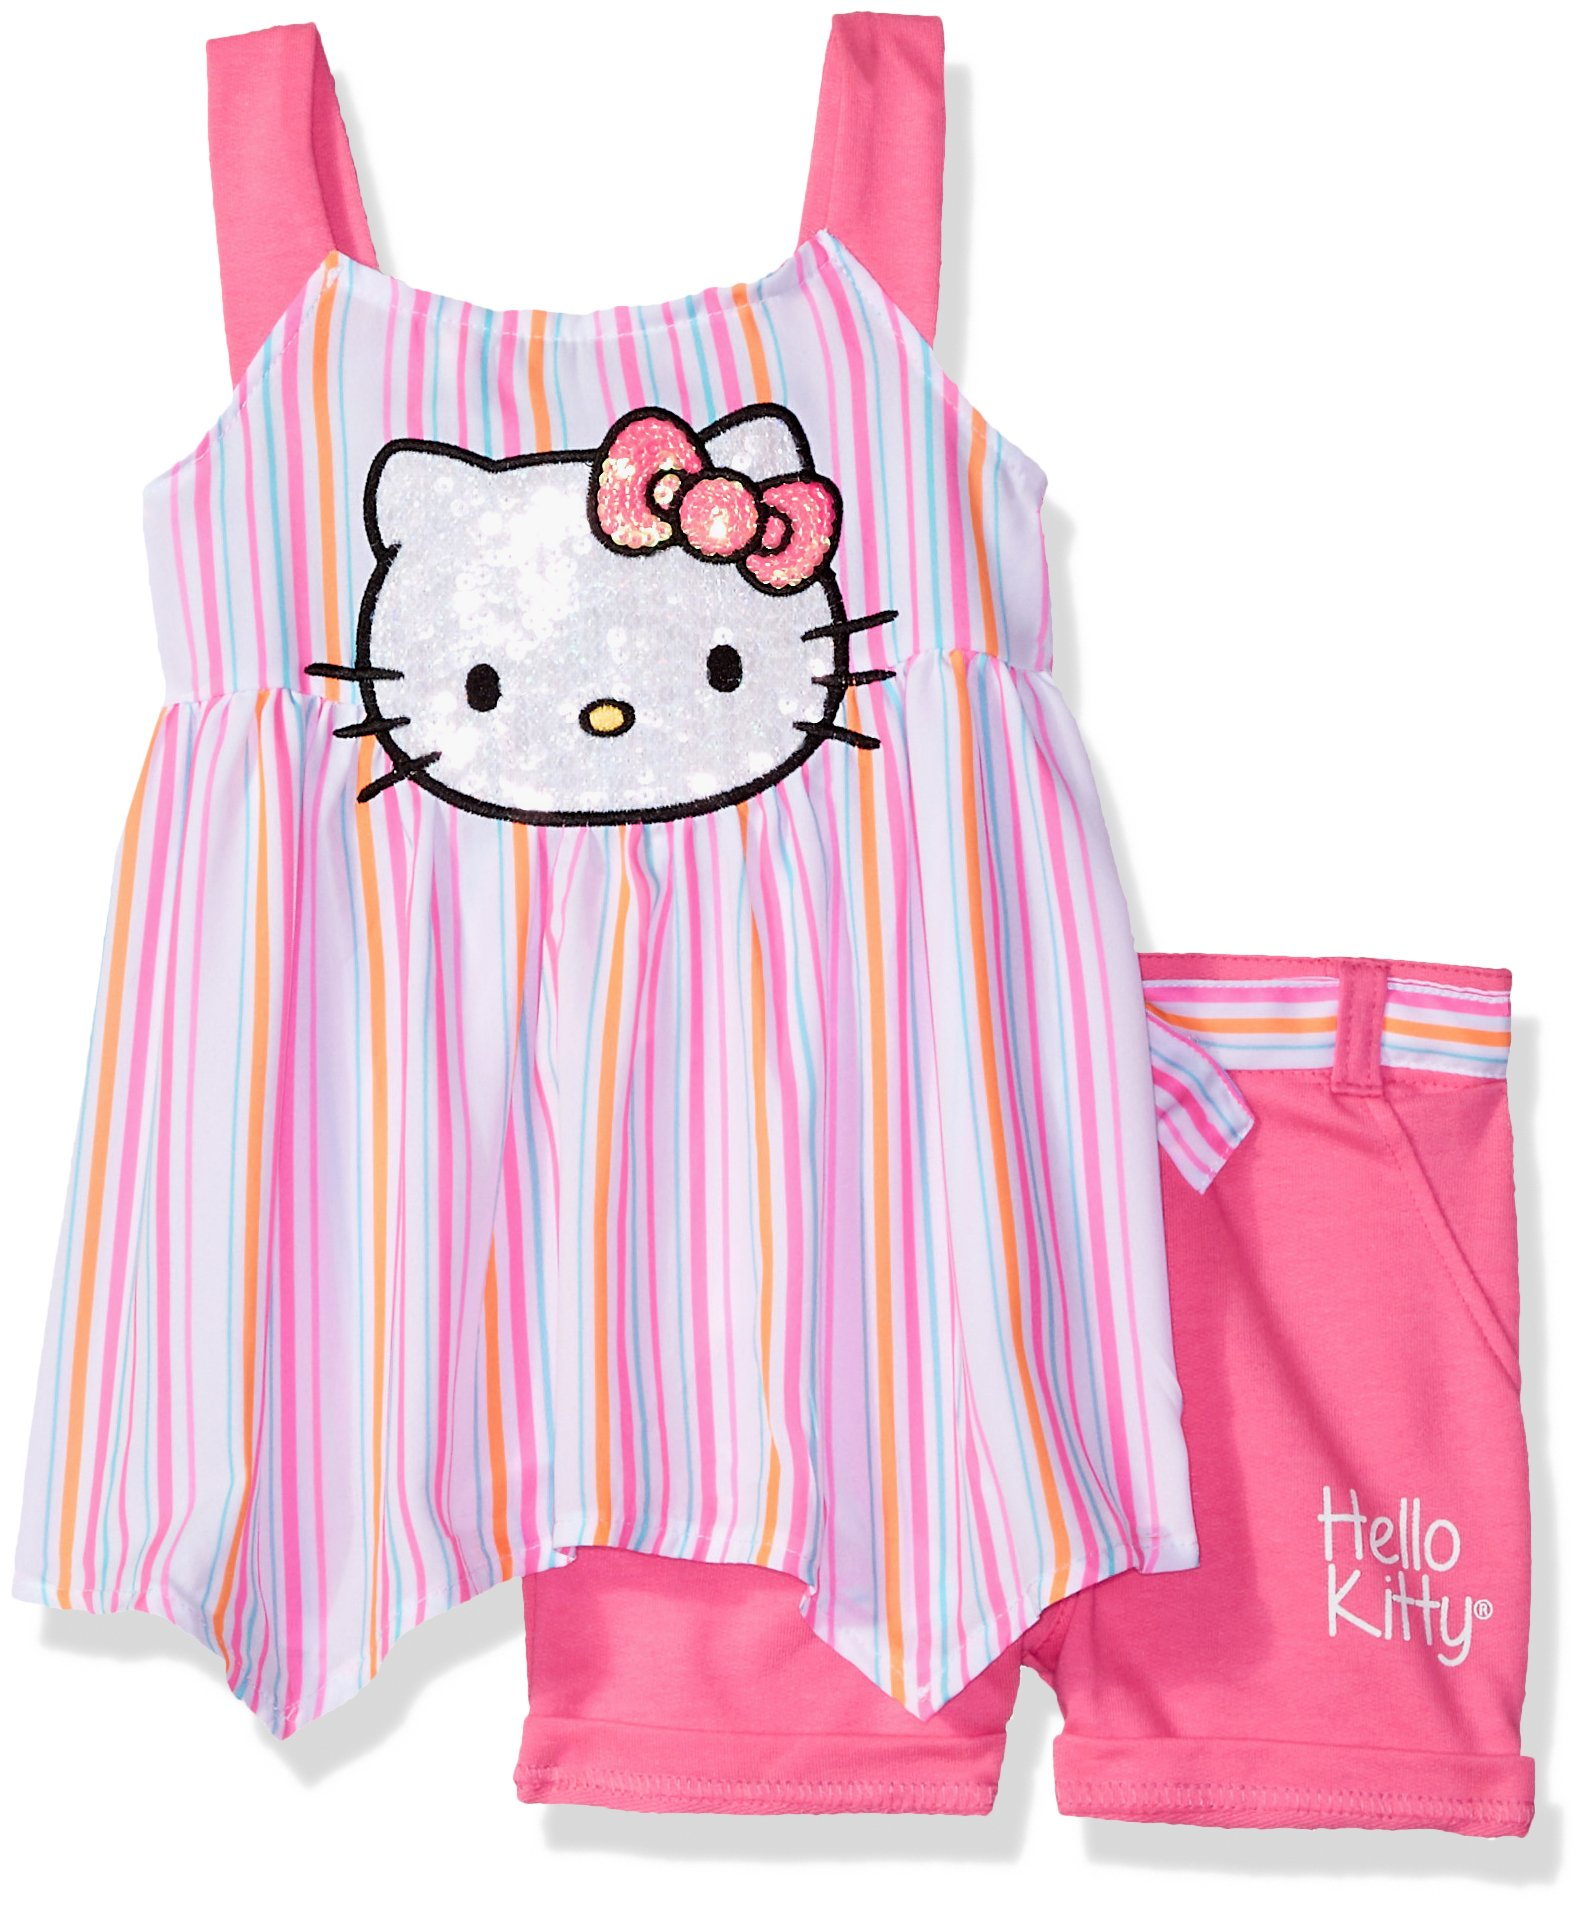 Hello Kitty Big Girls' Short Set with Embellished Fashion Top, Pink, 12